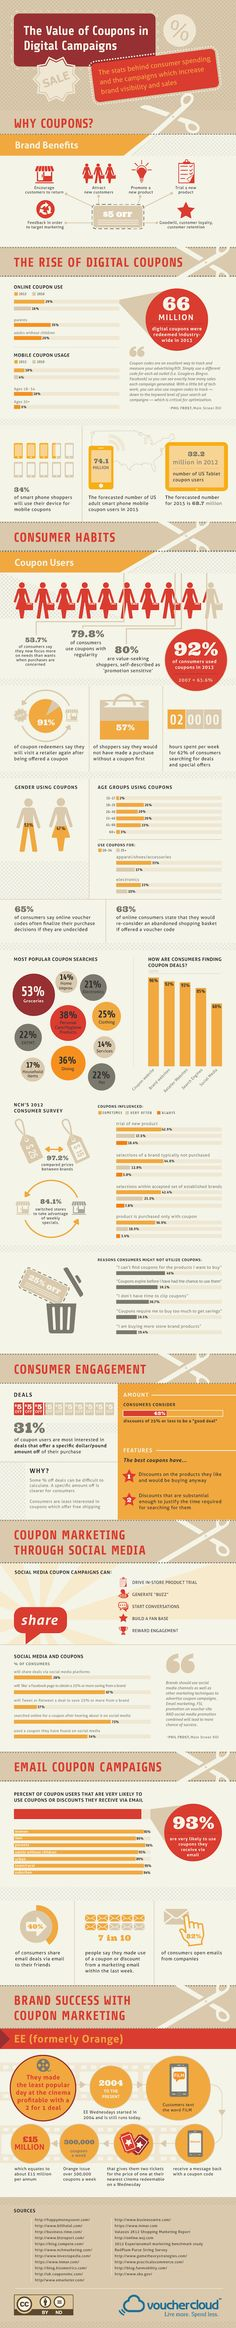 The Value of Coupons in Digital #Marketing Campaigns #infographic